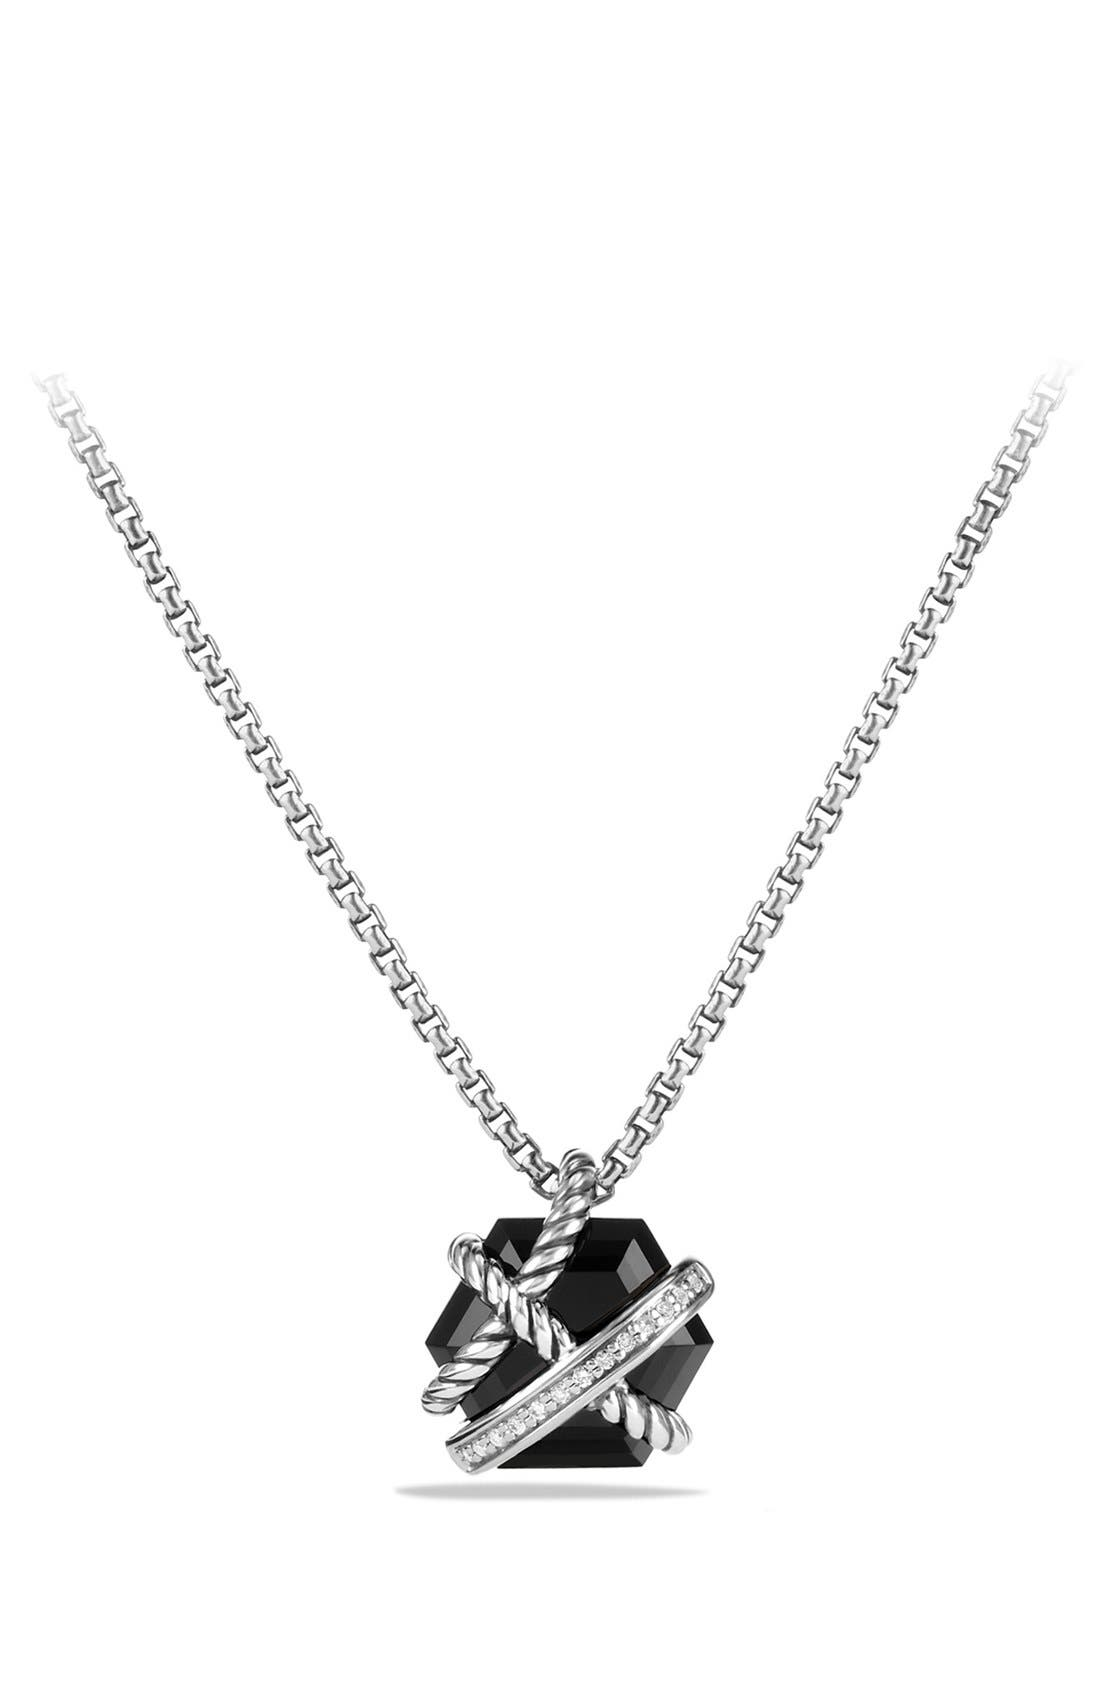 Main Image - David Yurman 'Cable Wrap' Pendant Necklace with Diamonds